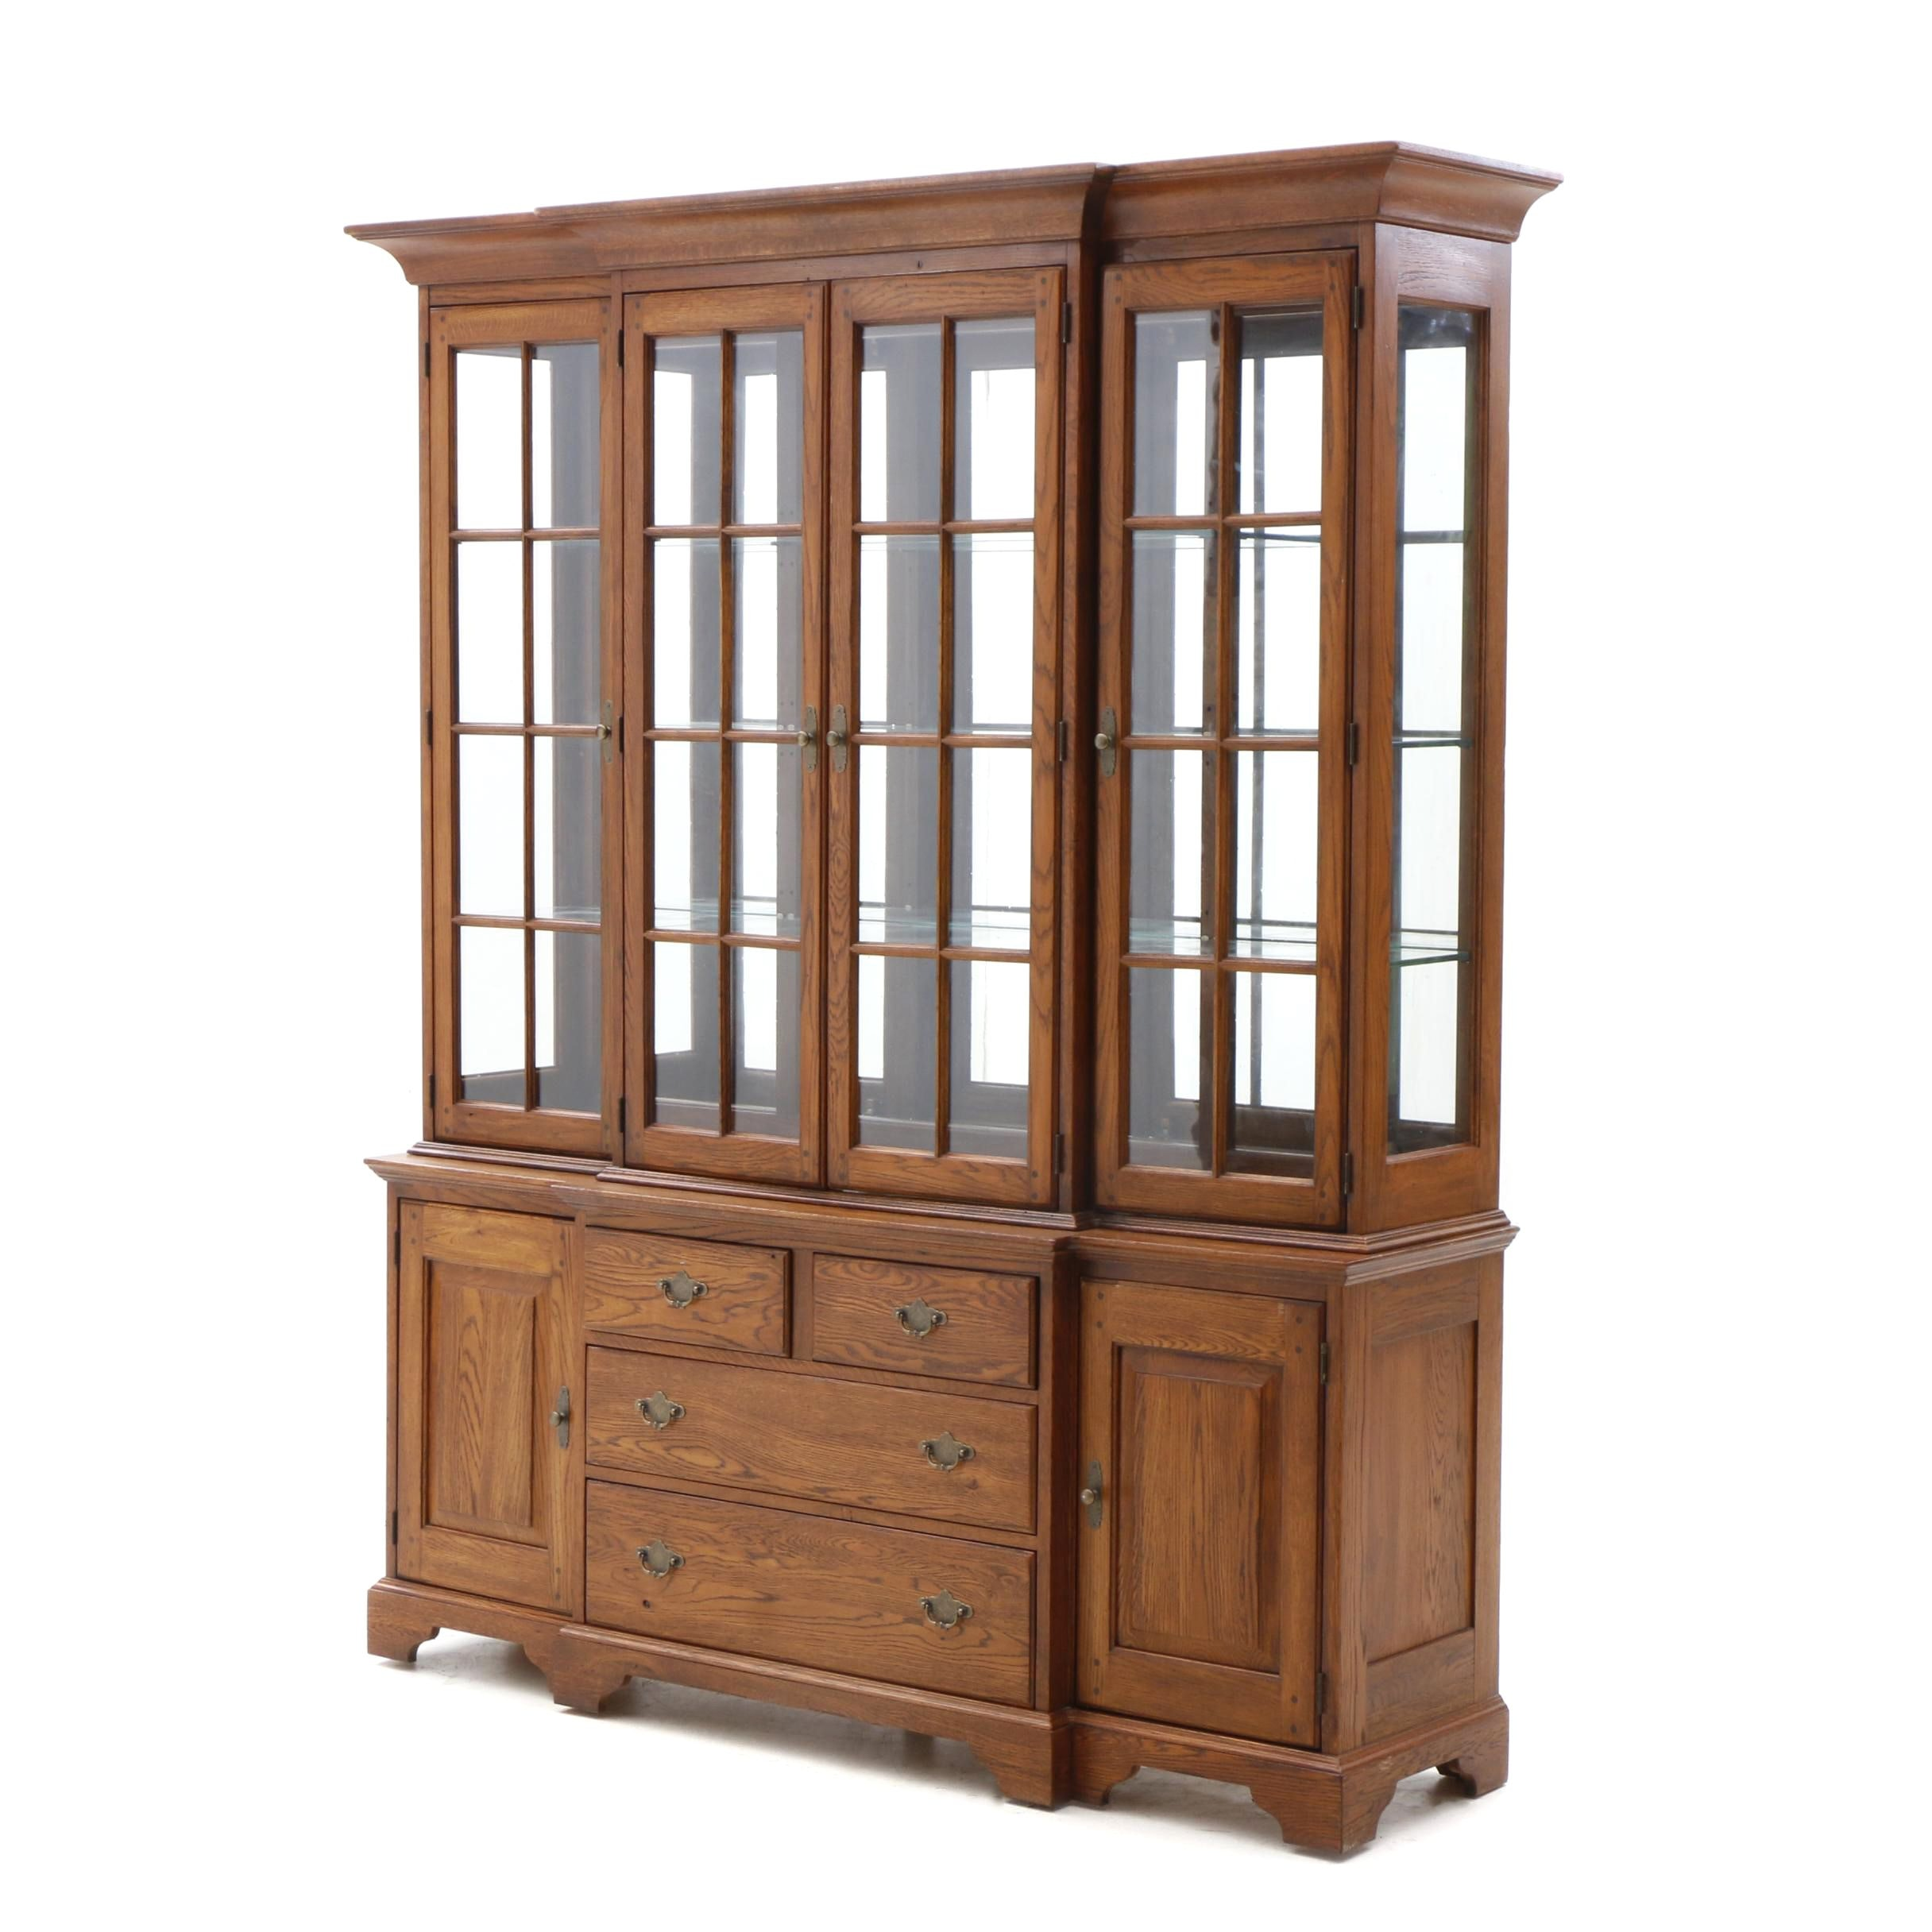 Two-Piece Illuminated Breakfront China Cabinet in Oak by Lineage